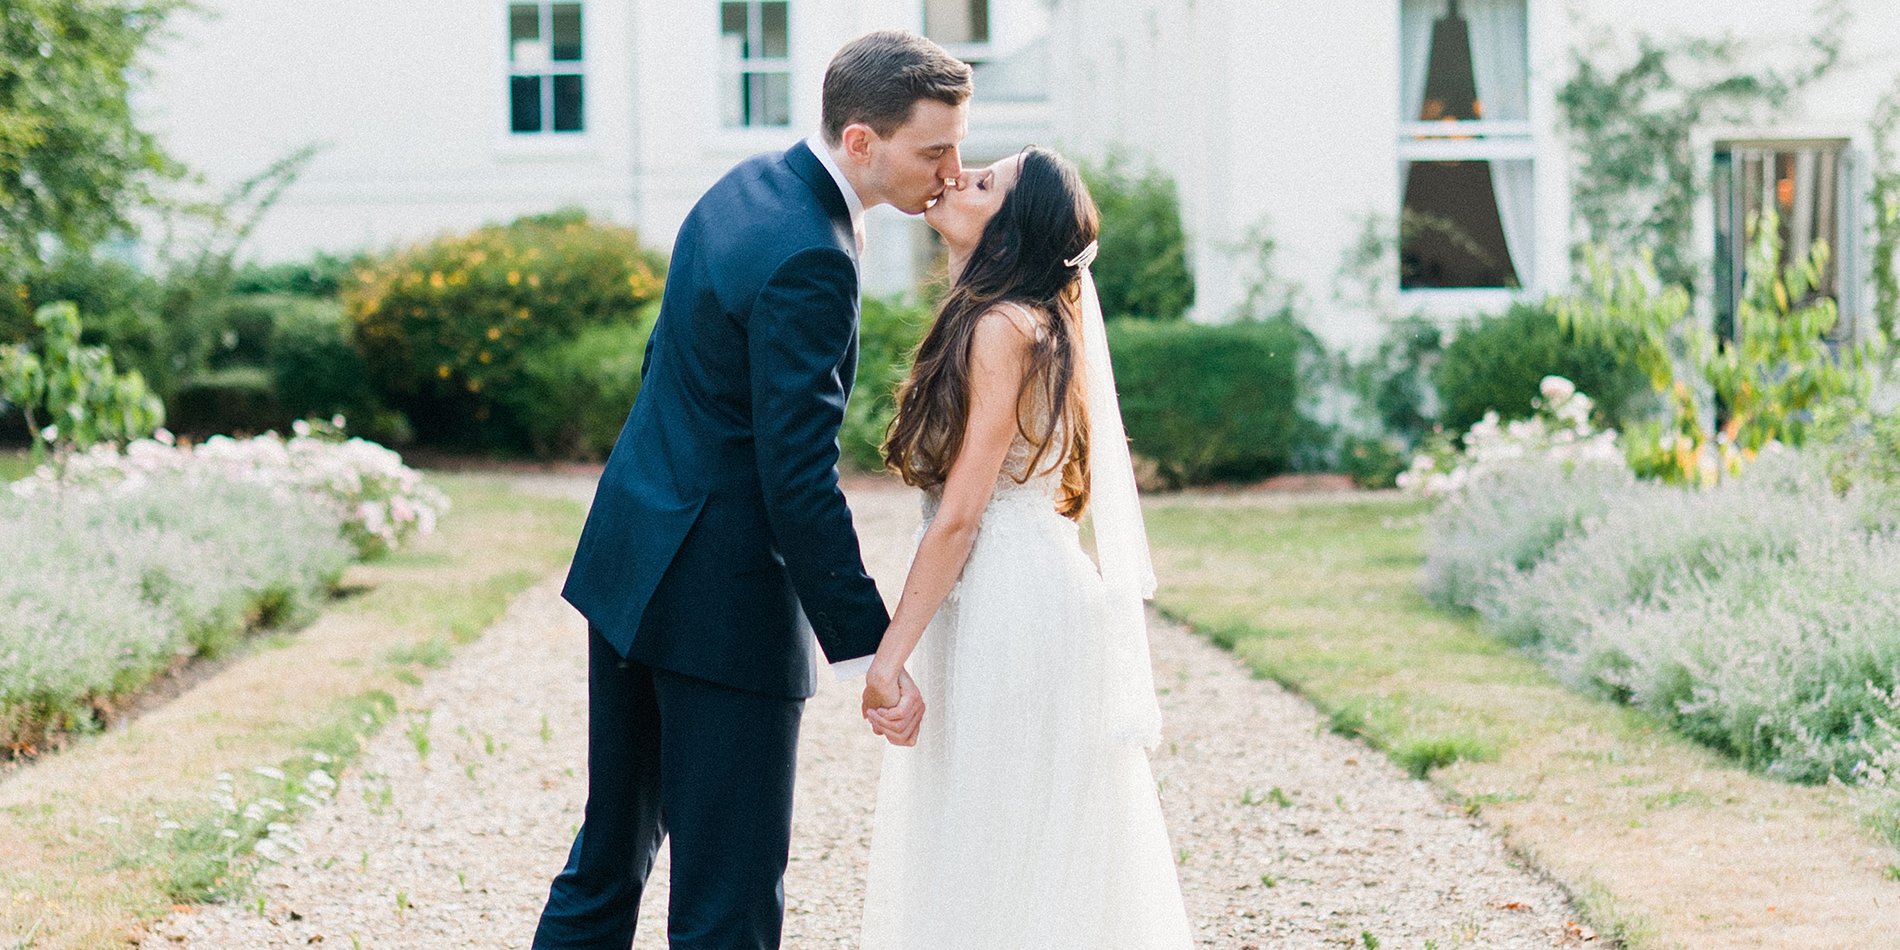 Linda and Adam's real life wedding at Morden Hall